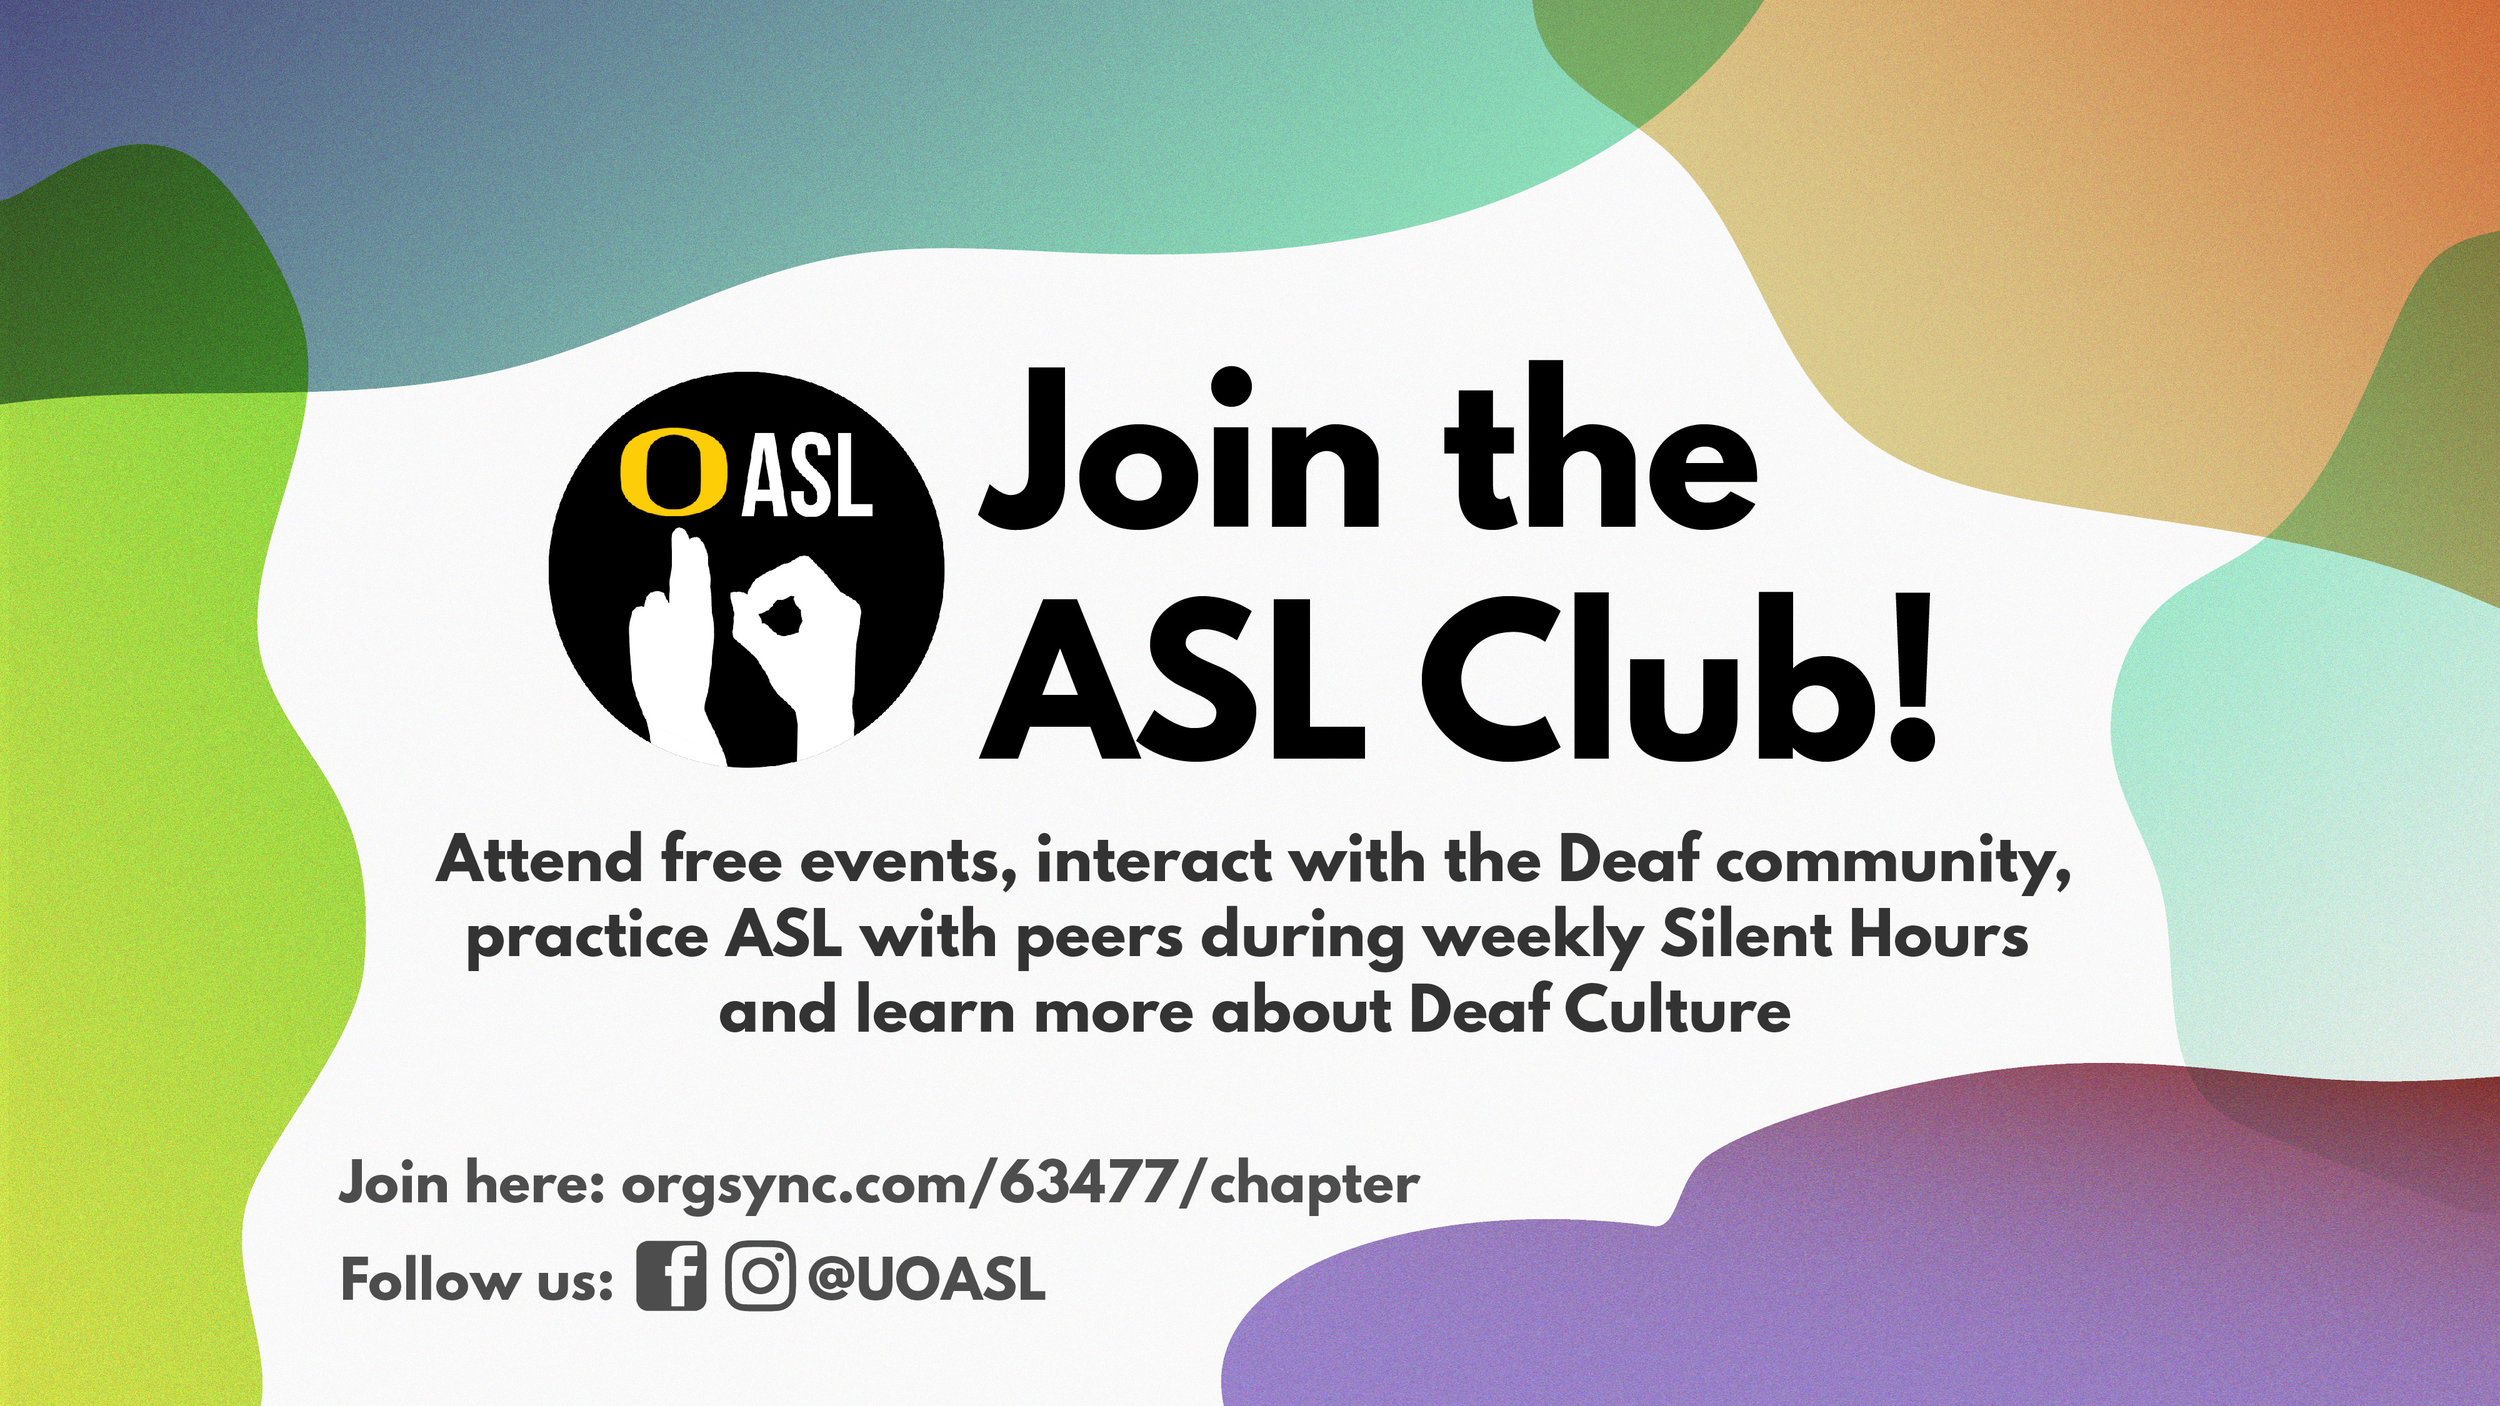 join asl club ad-01.jpg